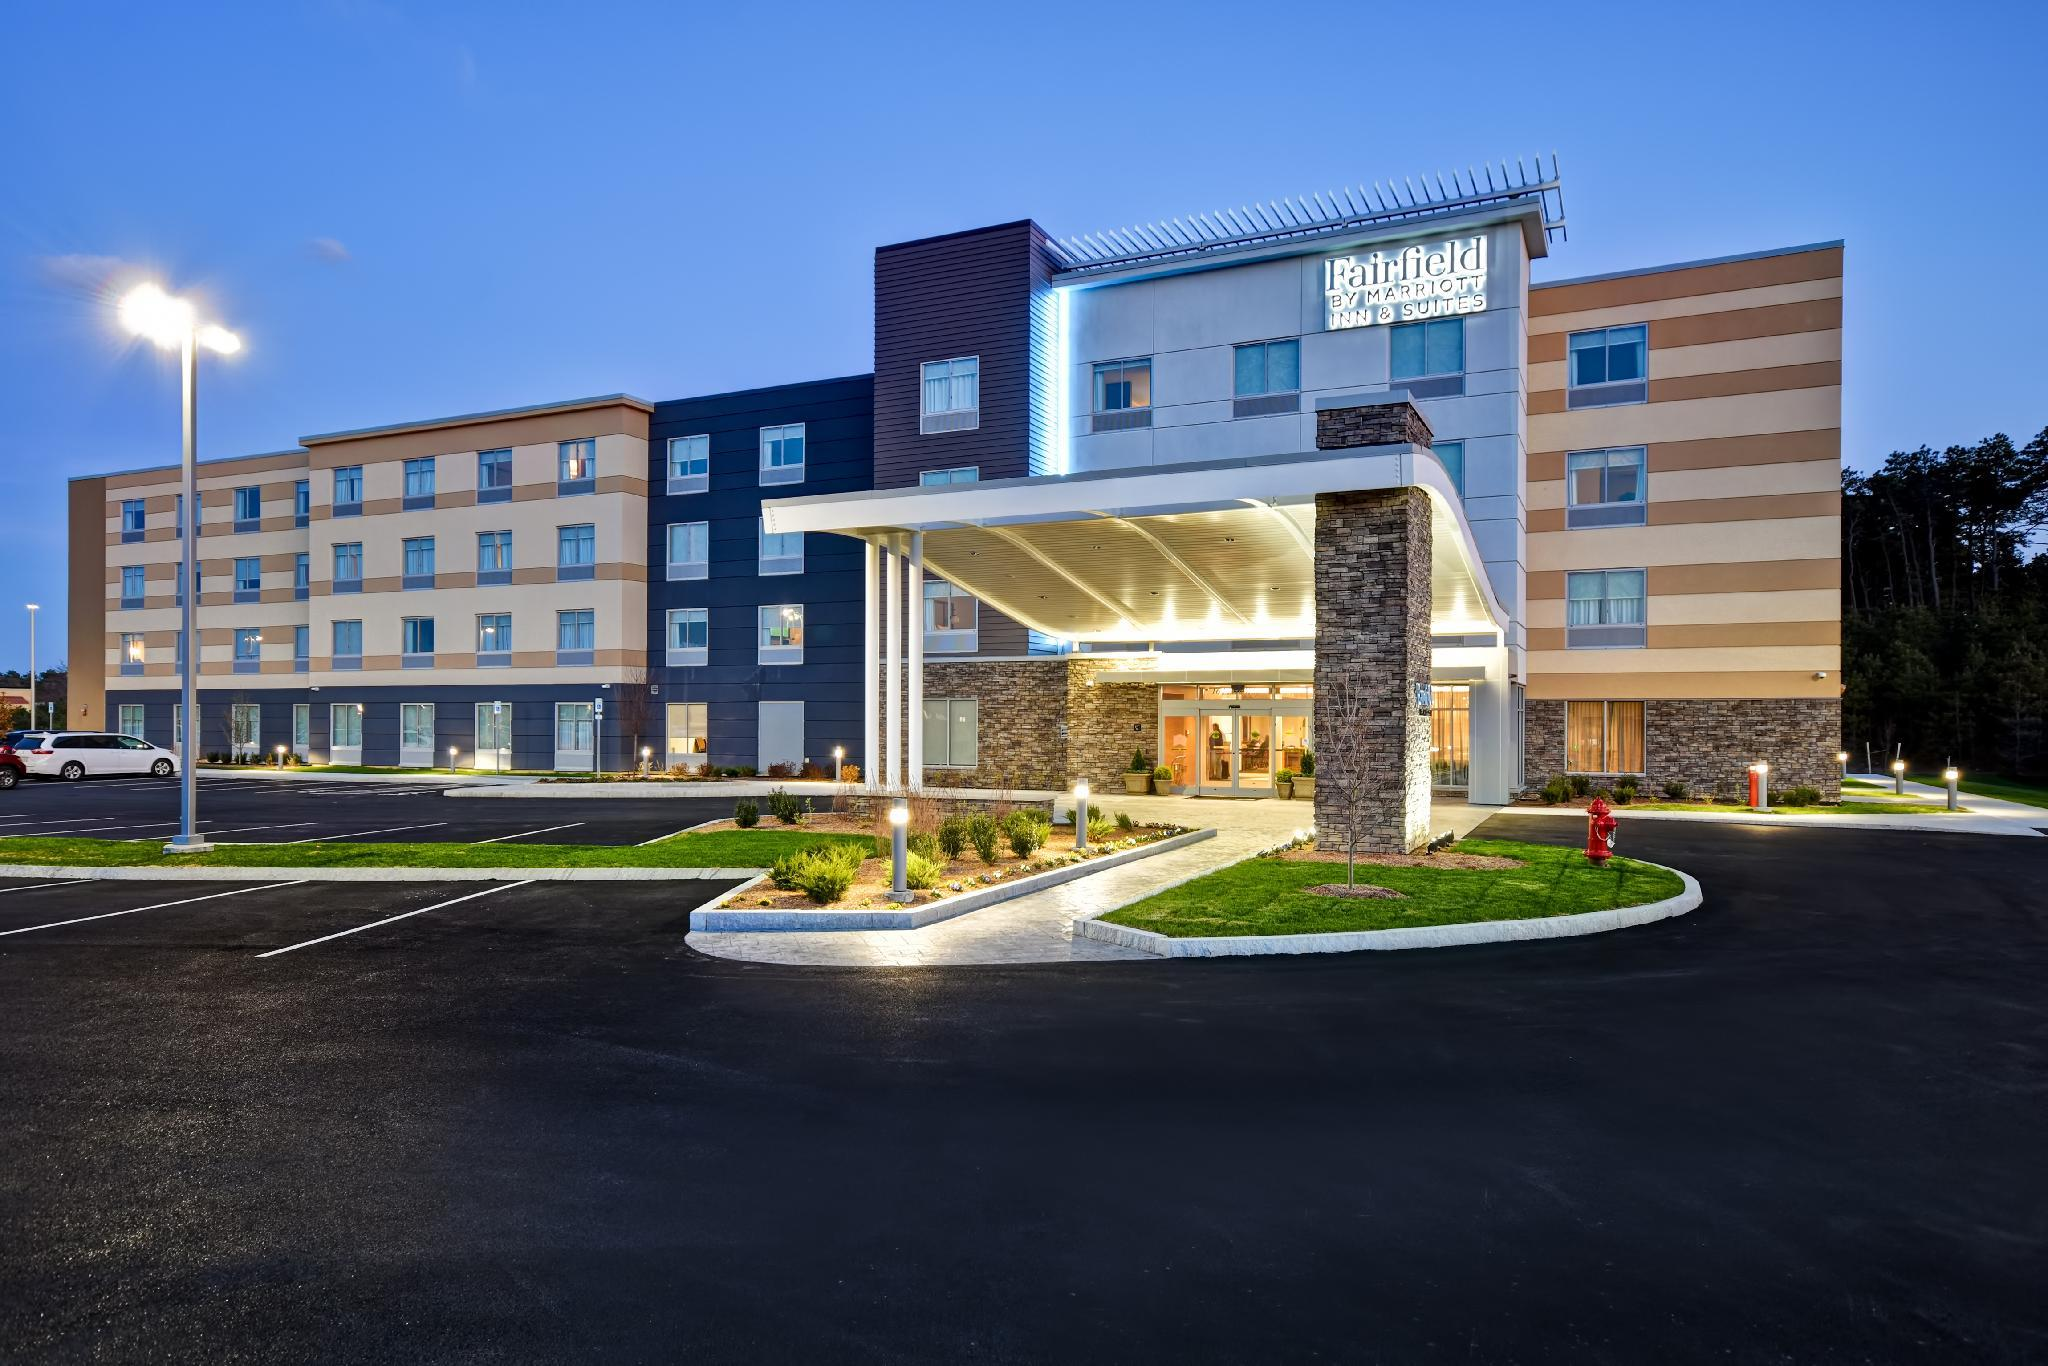 Fairfield Inn And Suites By Marriott Plymouth